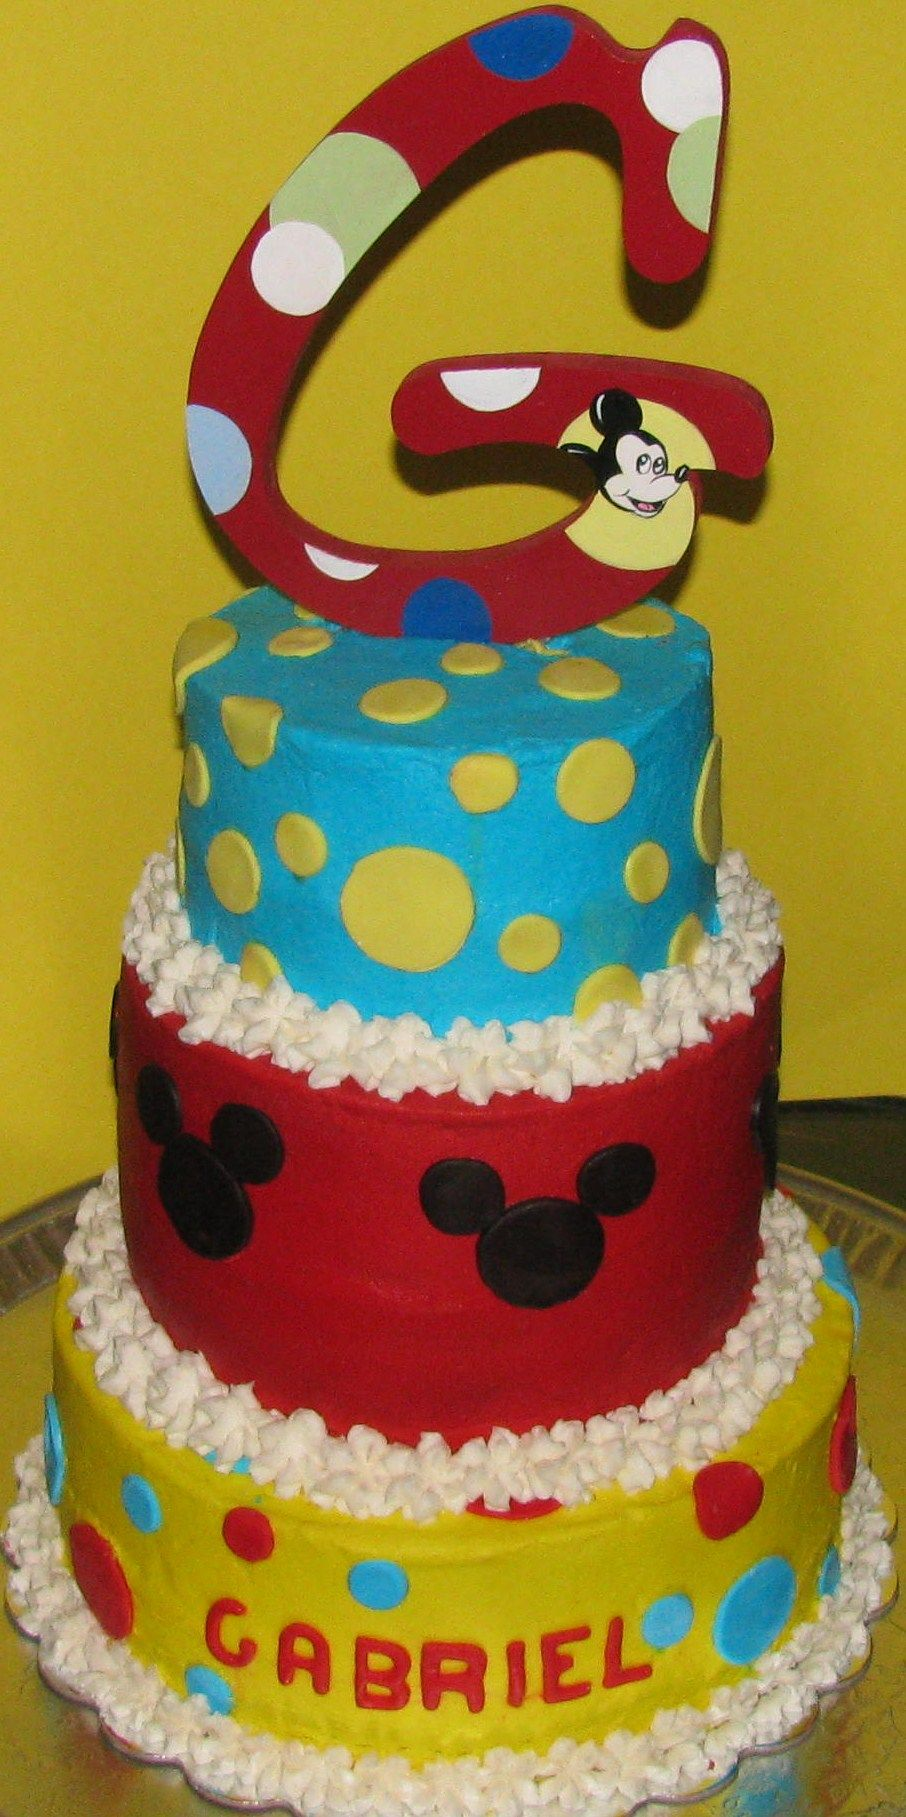 Baby Mickey Mouse Edible Cake Decorations Baby Mickey Mouse Cakes Mickey Mouse Baby Shower Cake 1st Bday